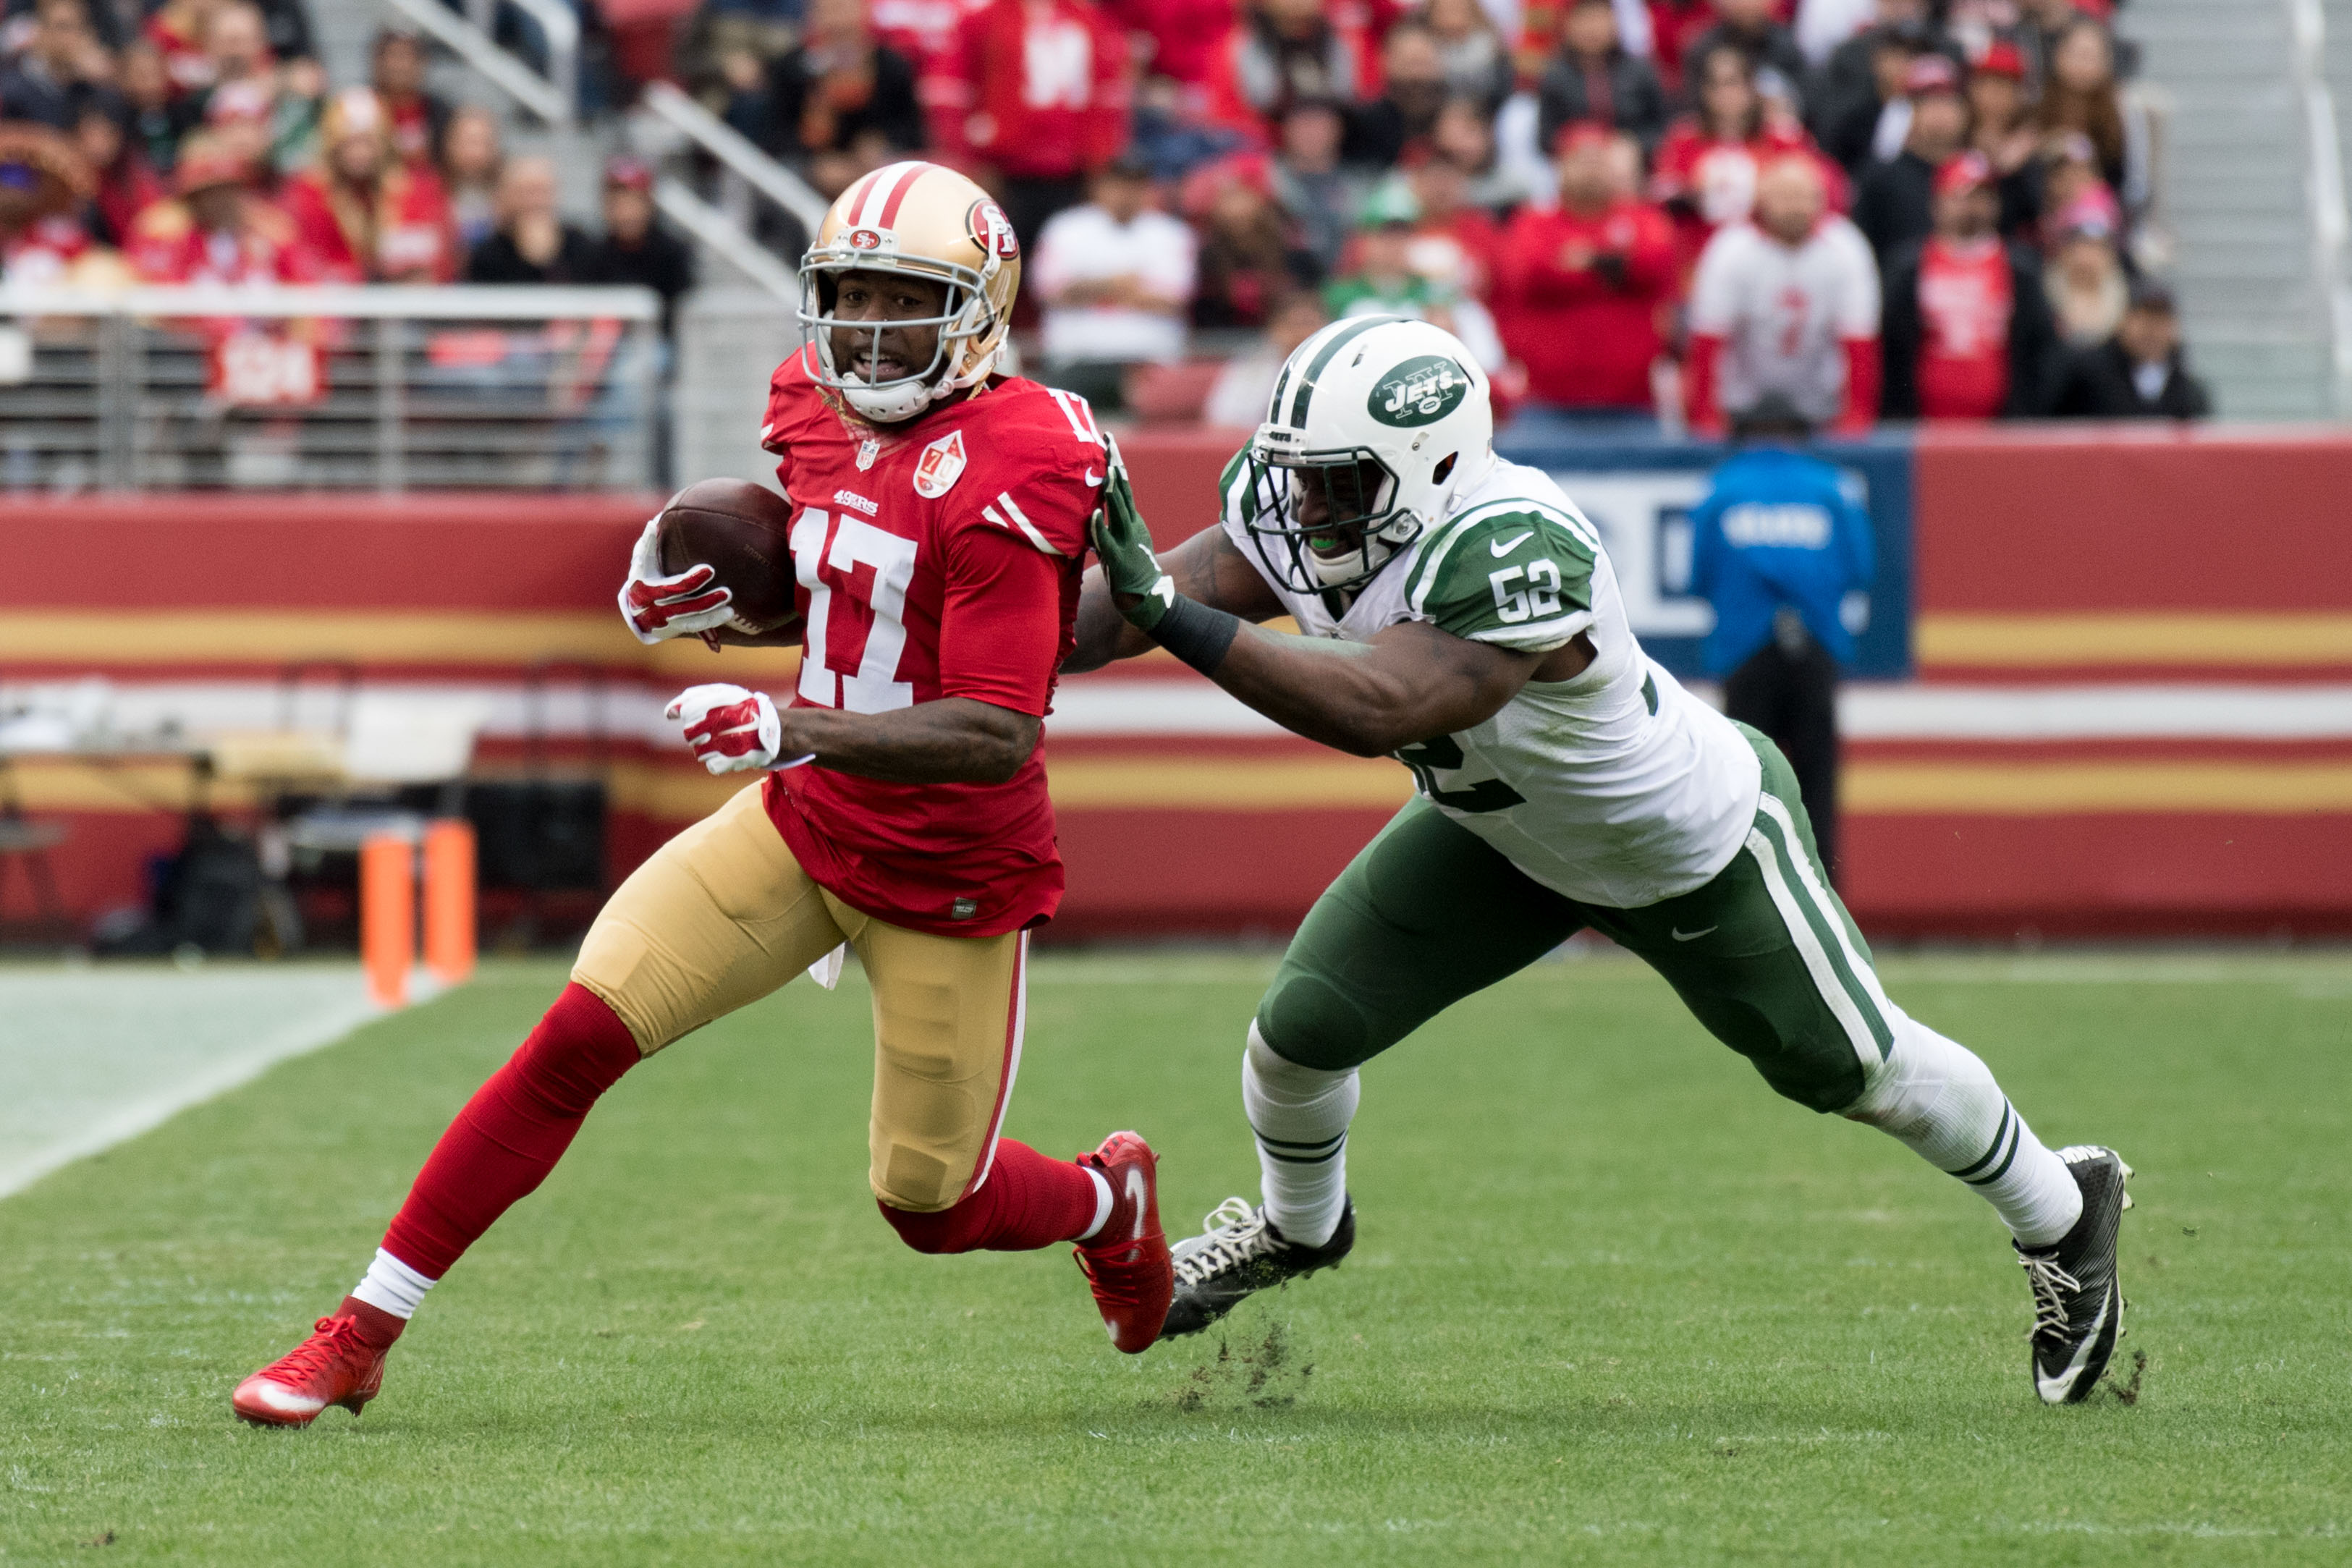 9767939-nfl-new-york-jets-at-san-francisco-49ers